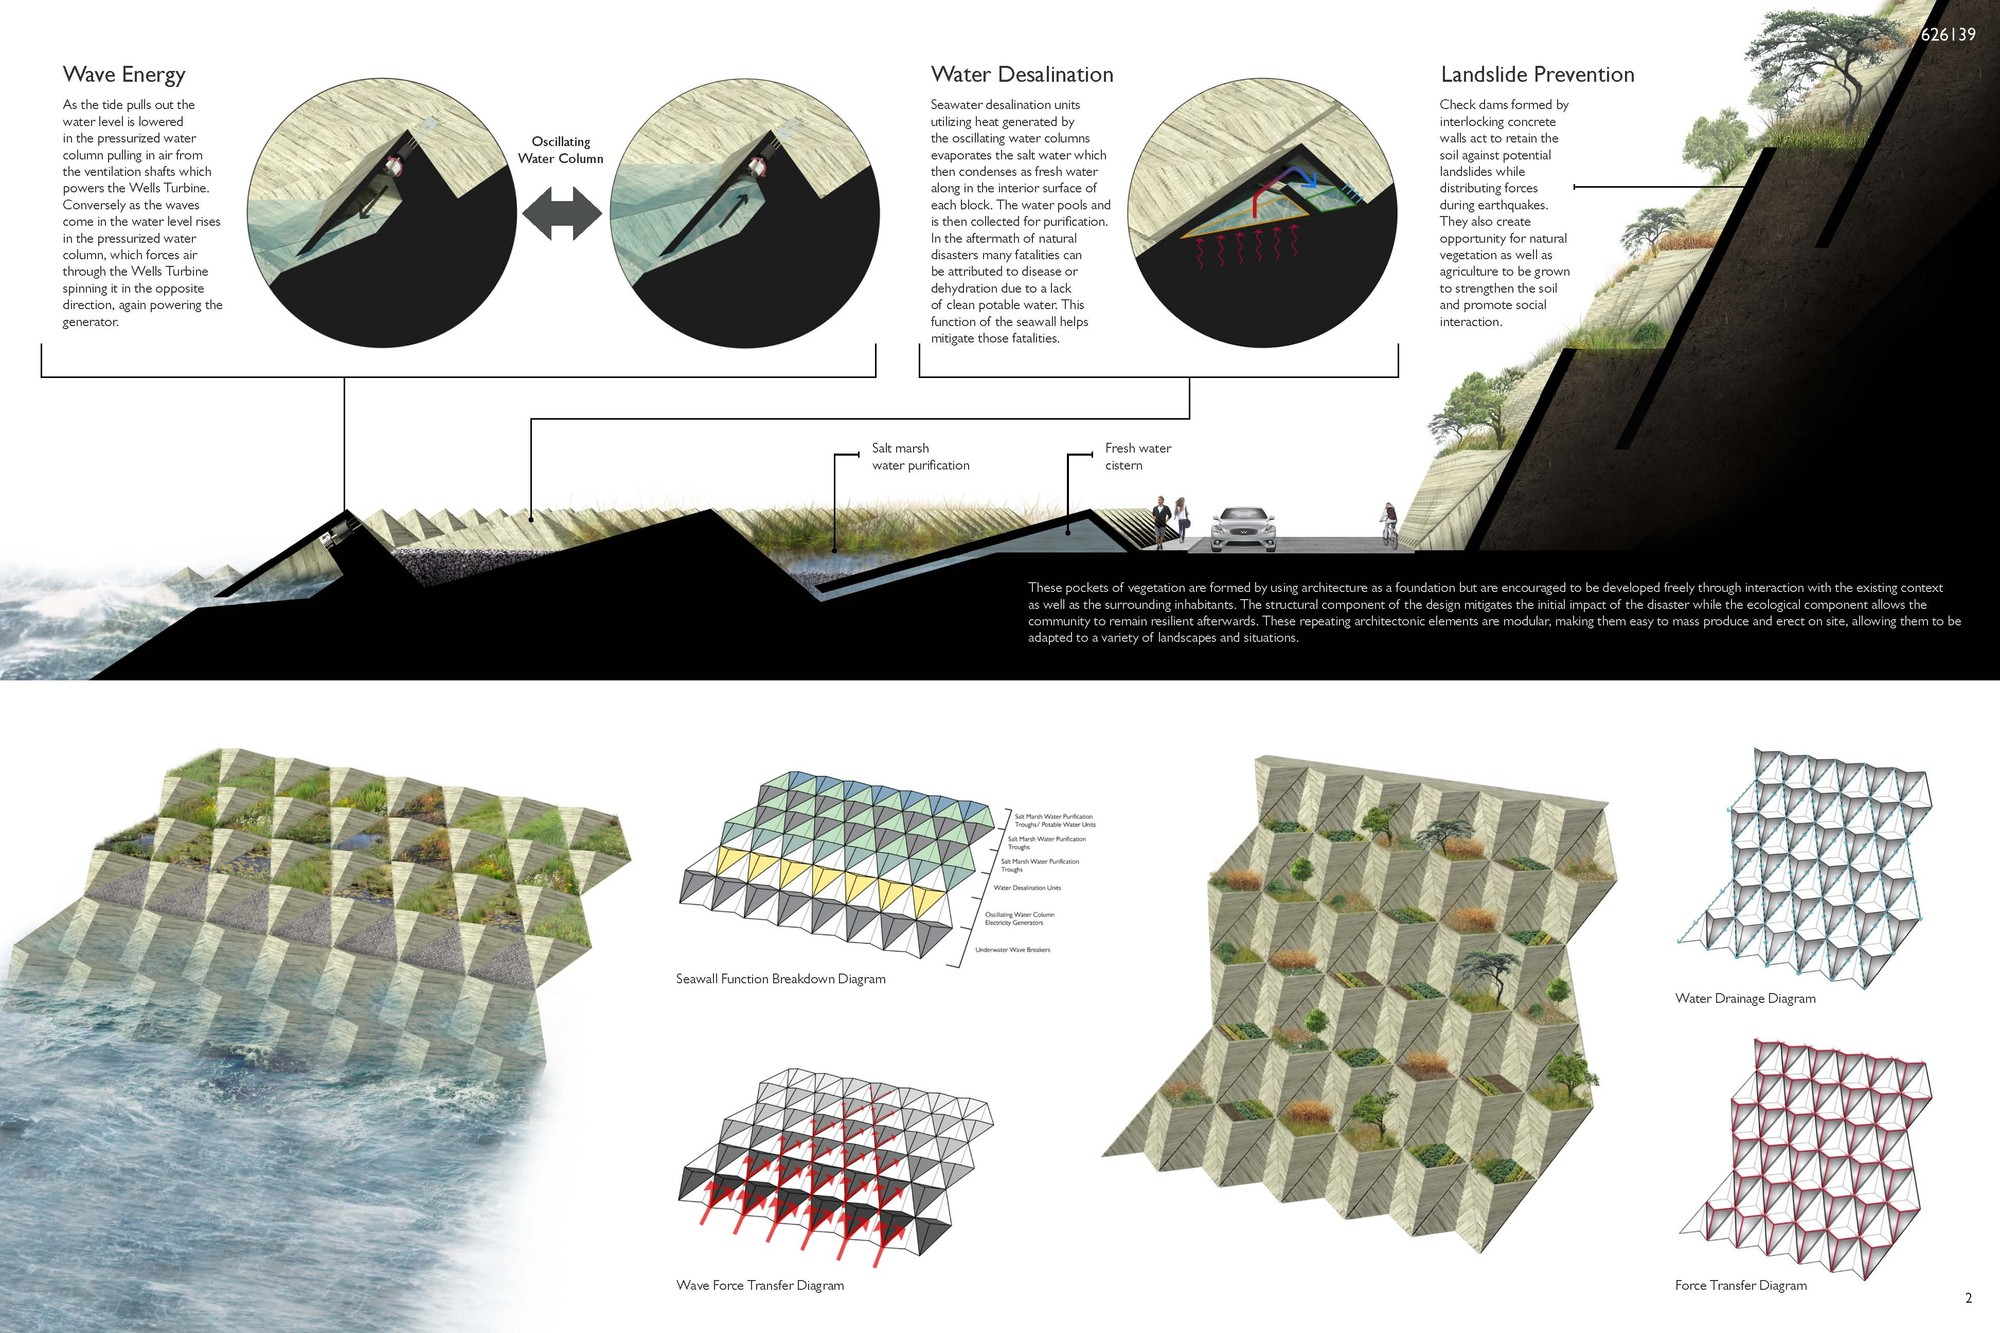 2176 with 545b2176e58ece51b9000050 Winners Announced For Architecture For Humanity Vancouver S Next Big One  Petition Image on 545b2176e58ece51b9000050 Winners Announced For Architecture For Humanity Vancouver S Next Big One  petition Image furthermore 6713314385 as well 4439769783 moreover 9540 20Havanna 20  20Playa 20del 20Este further Benefit.